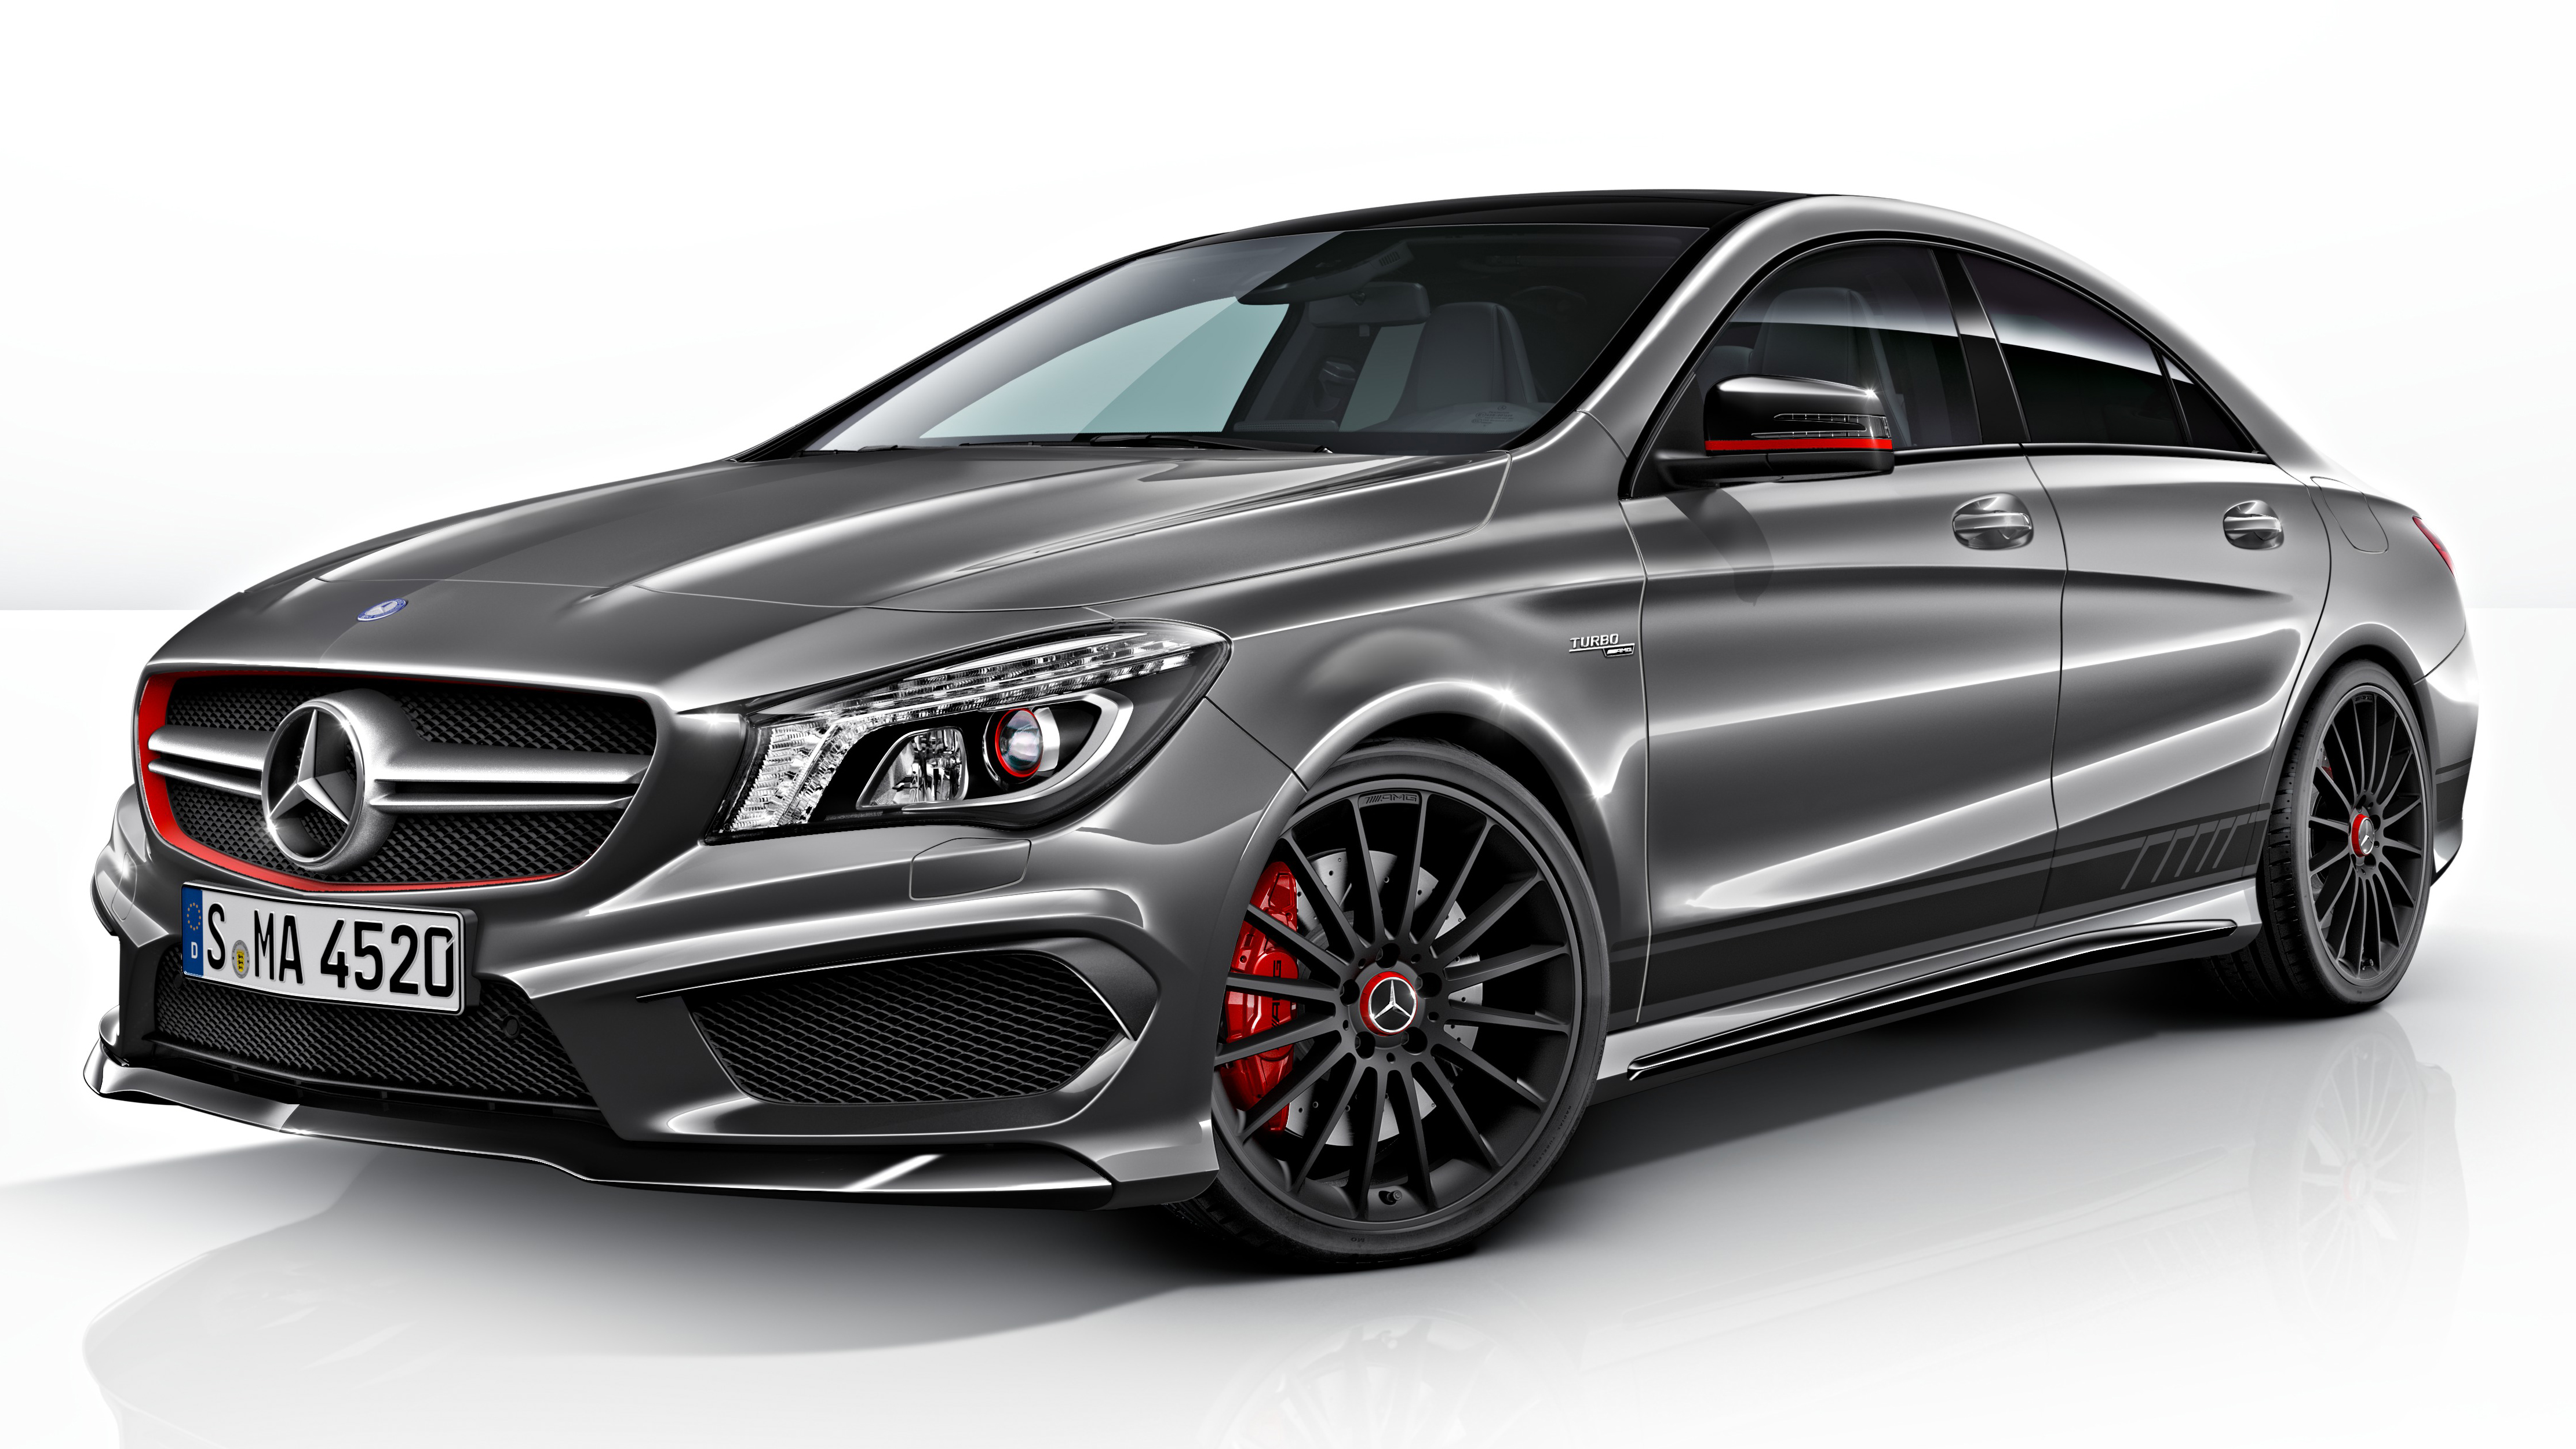 Mercedes Benz Cla 45 Amg Now Available Rm393k Image 246739